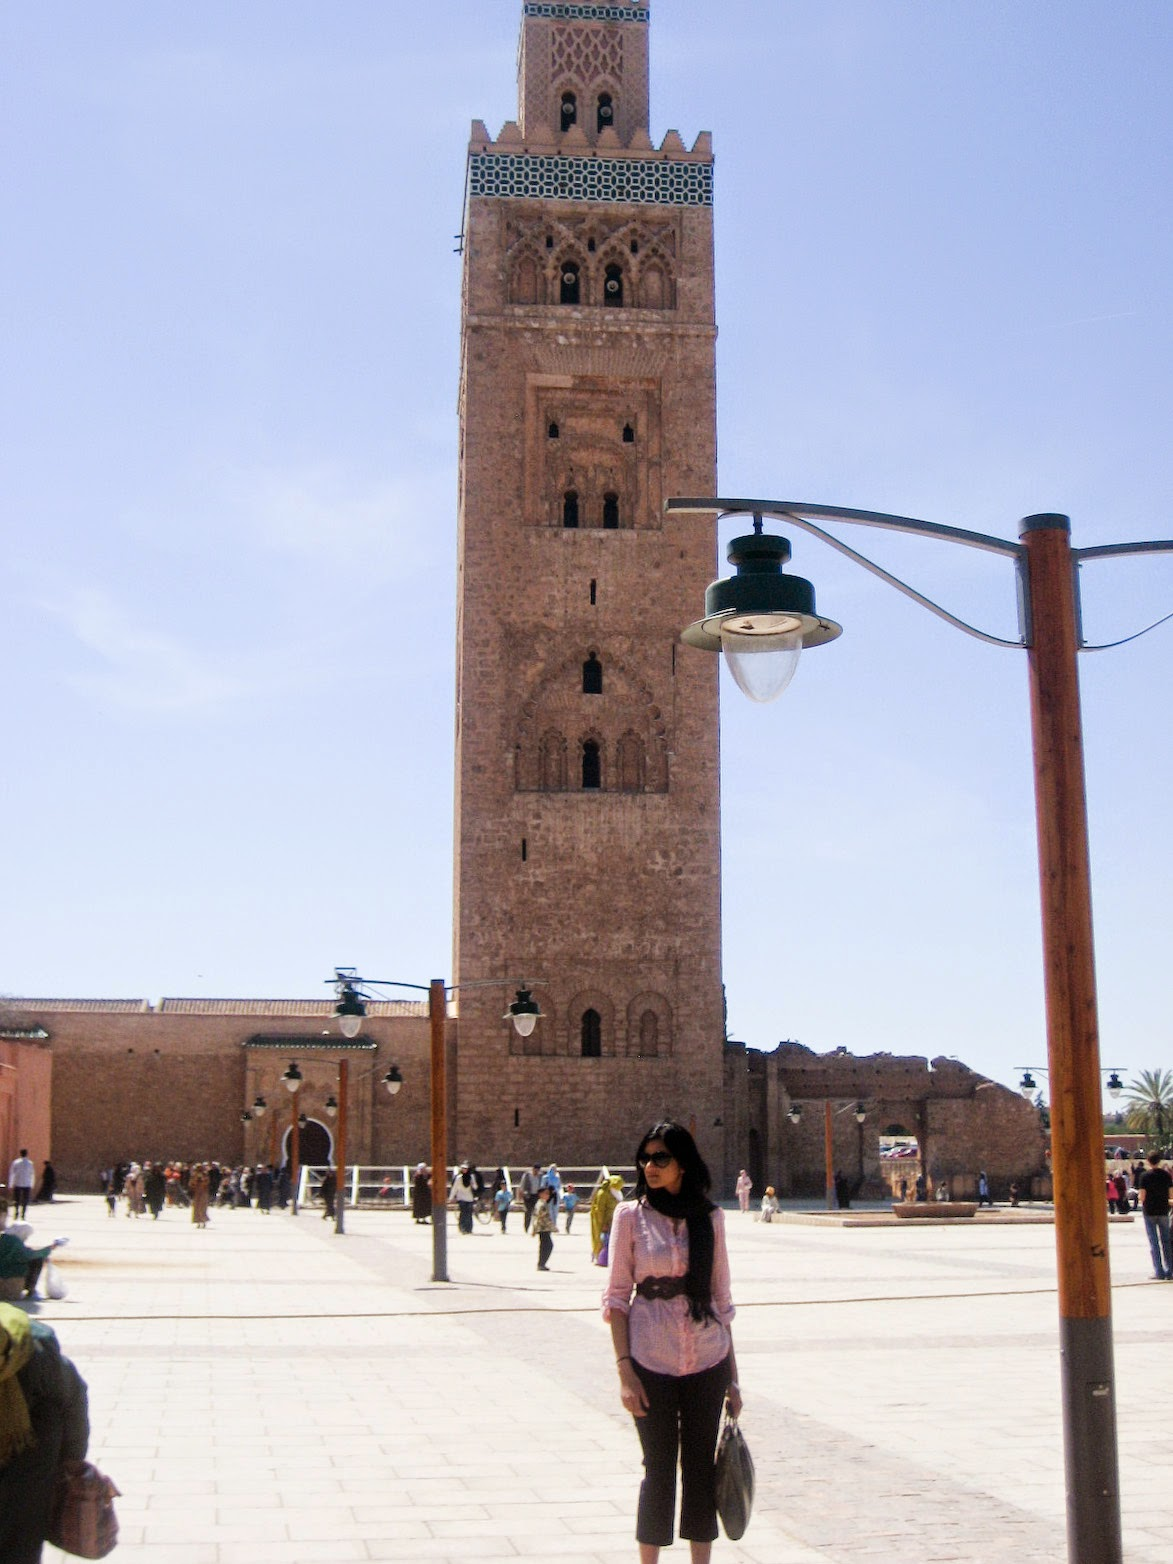 Top Marrakech tourist attractions: Koutoubia Mosque